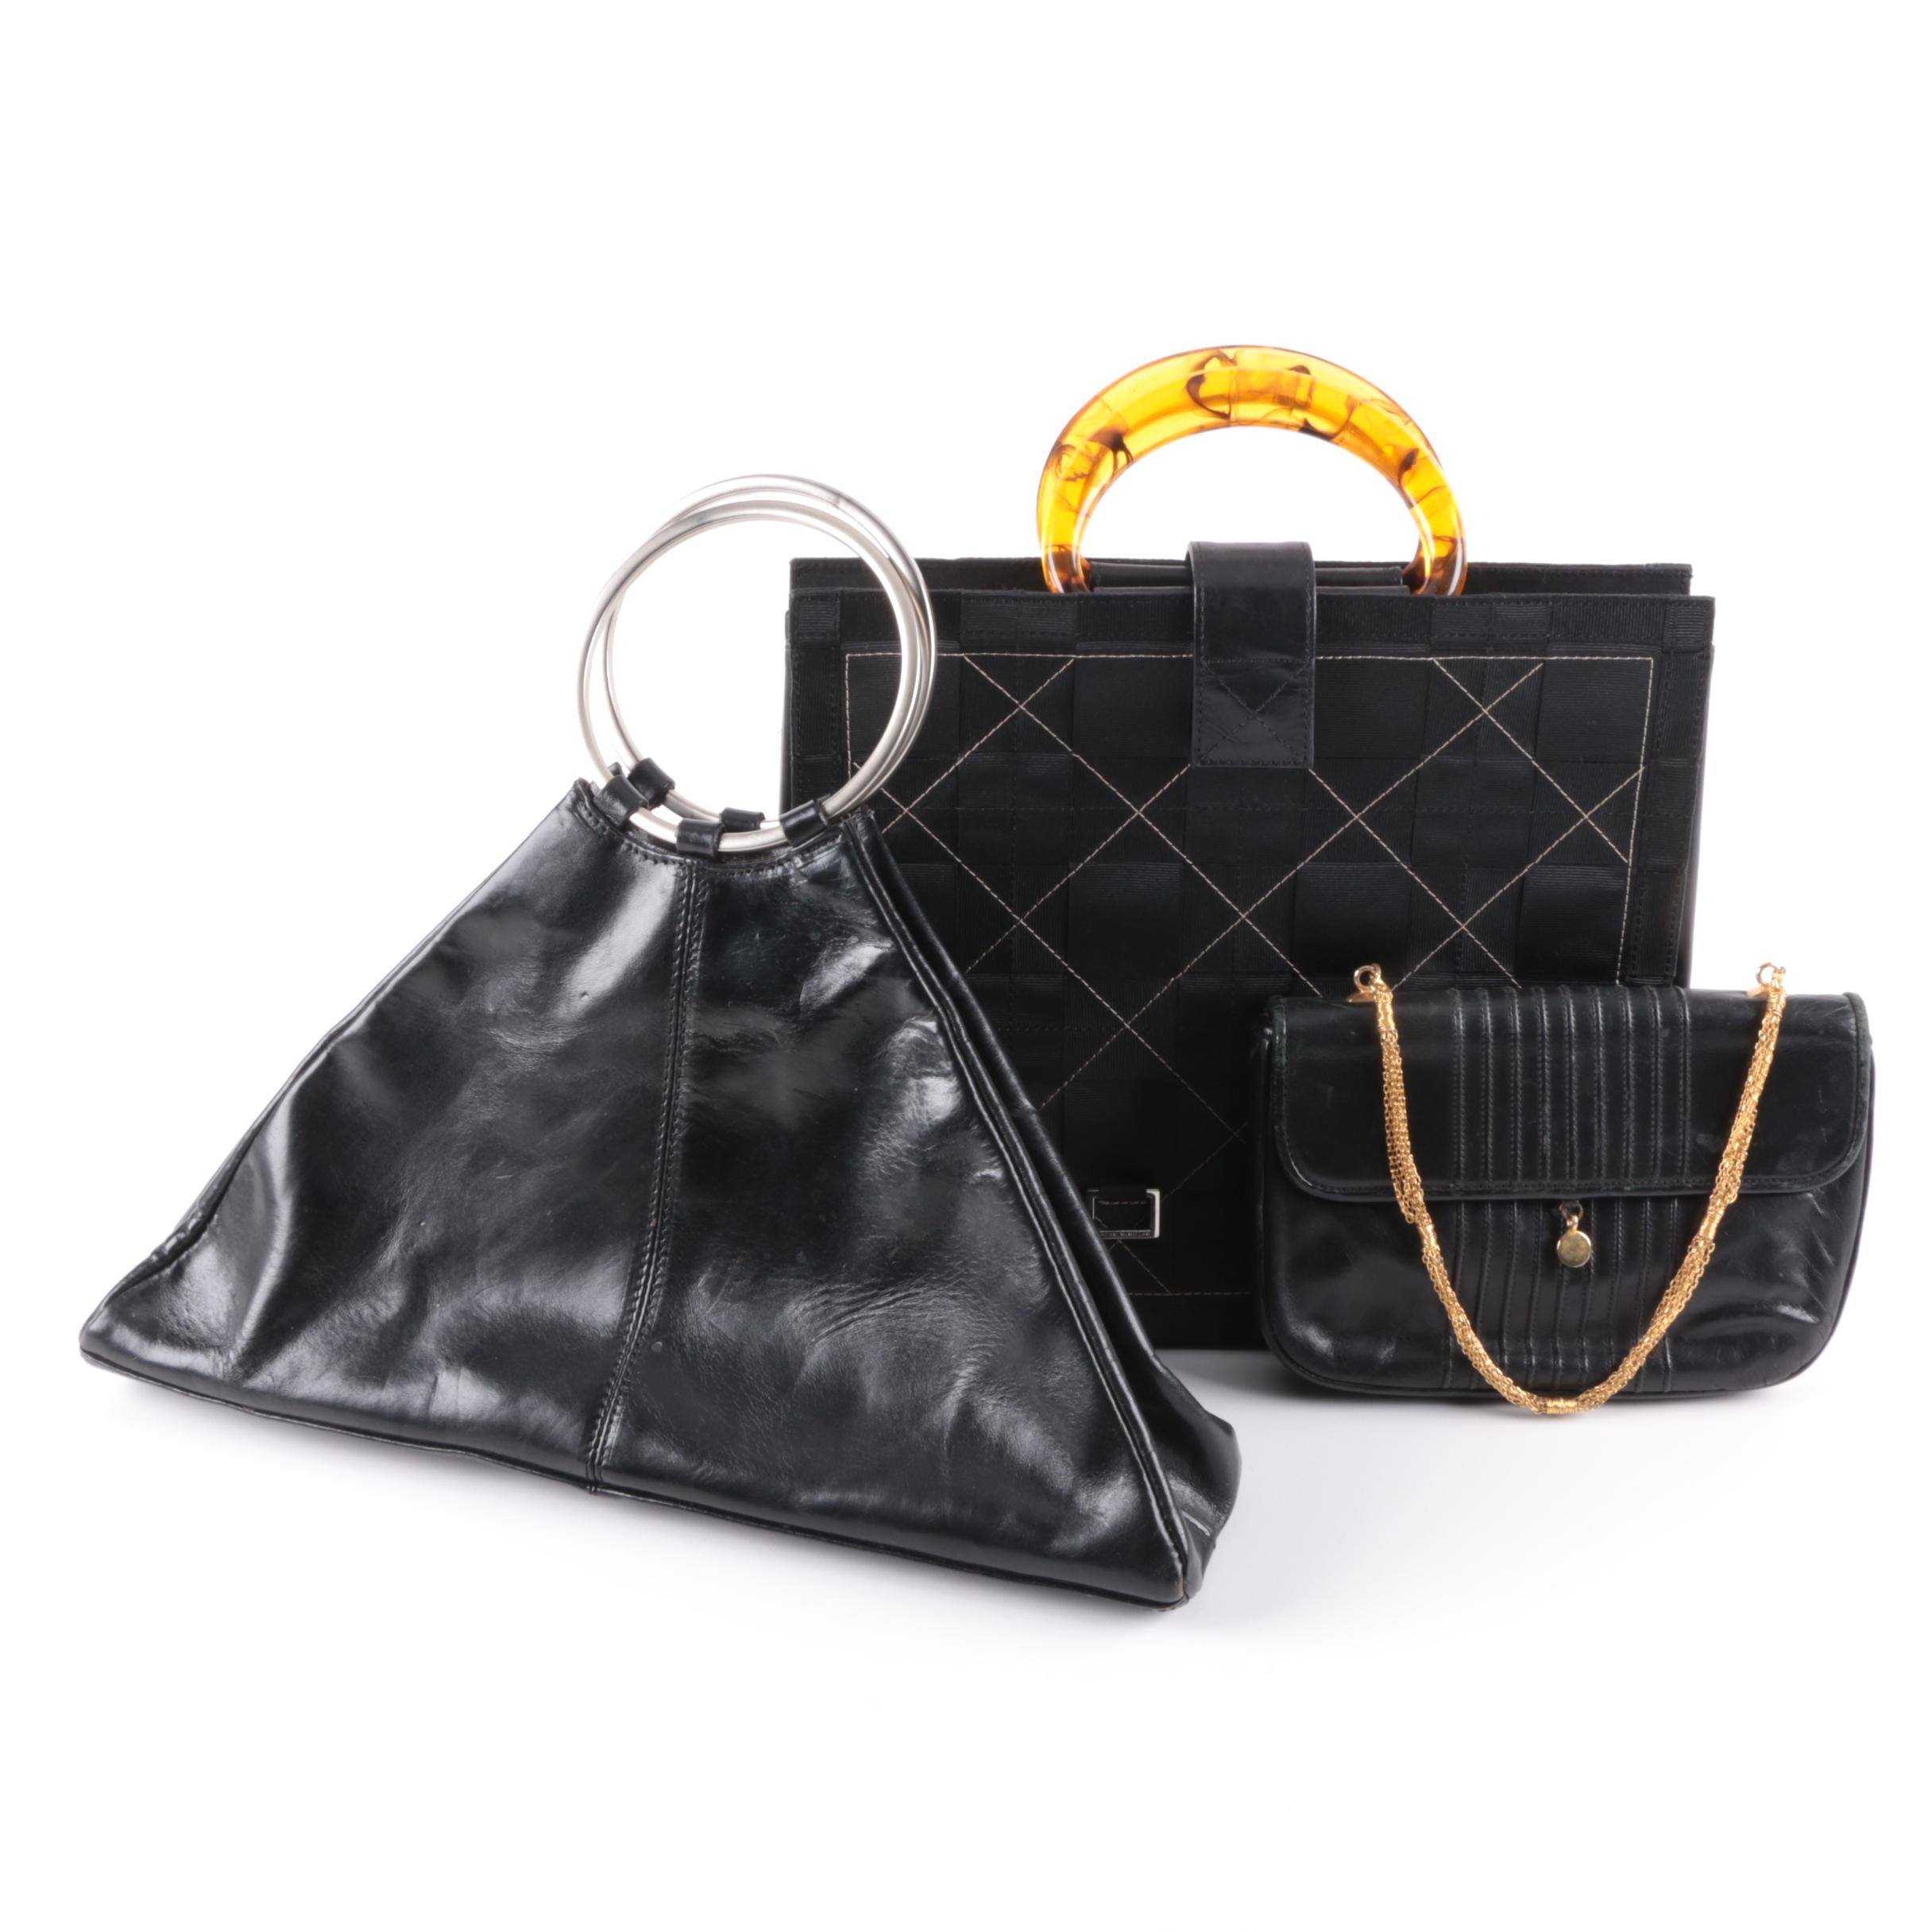 Black Leather Handbags With Jordan McMillian